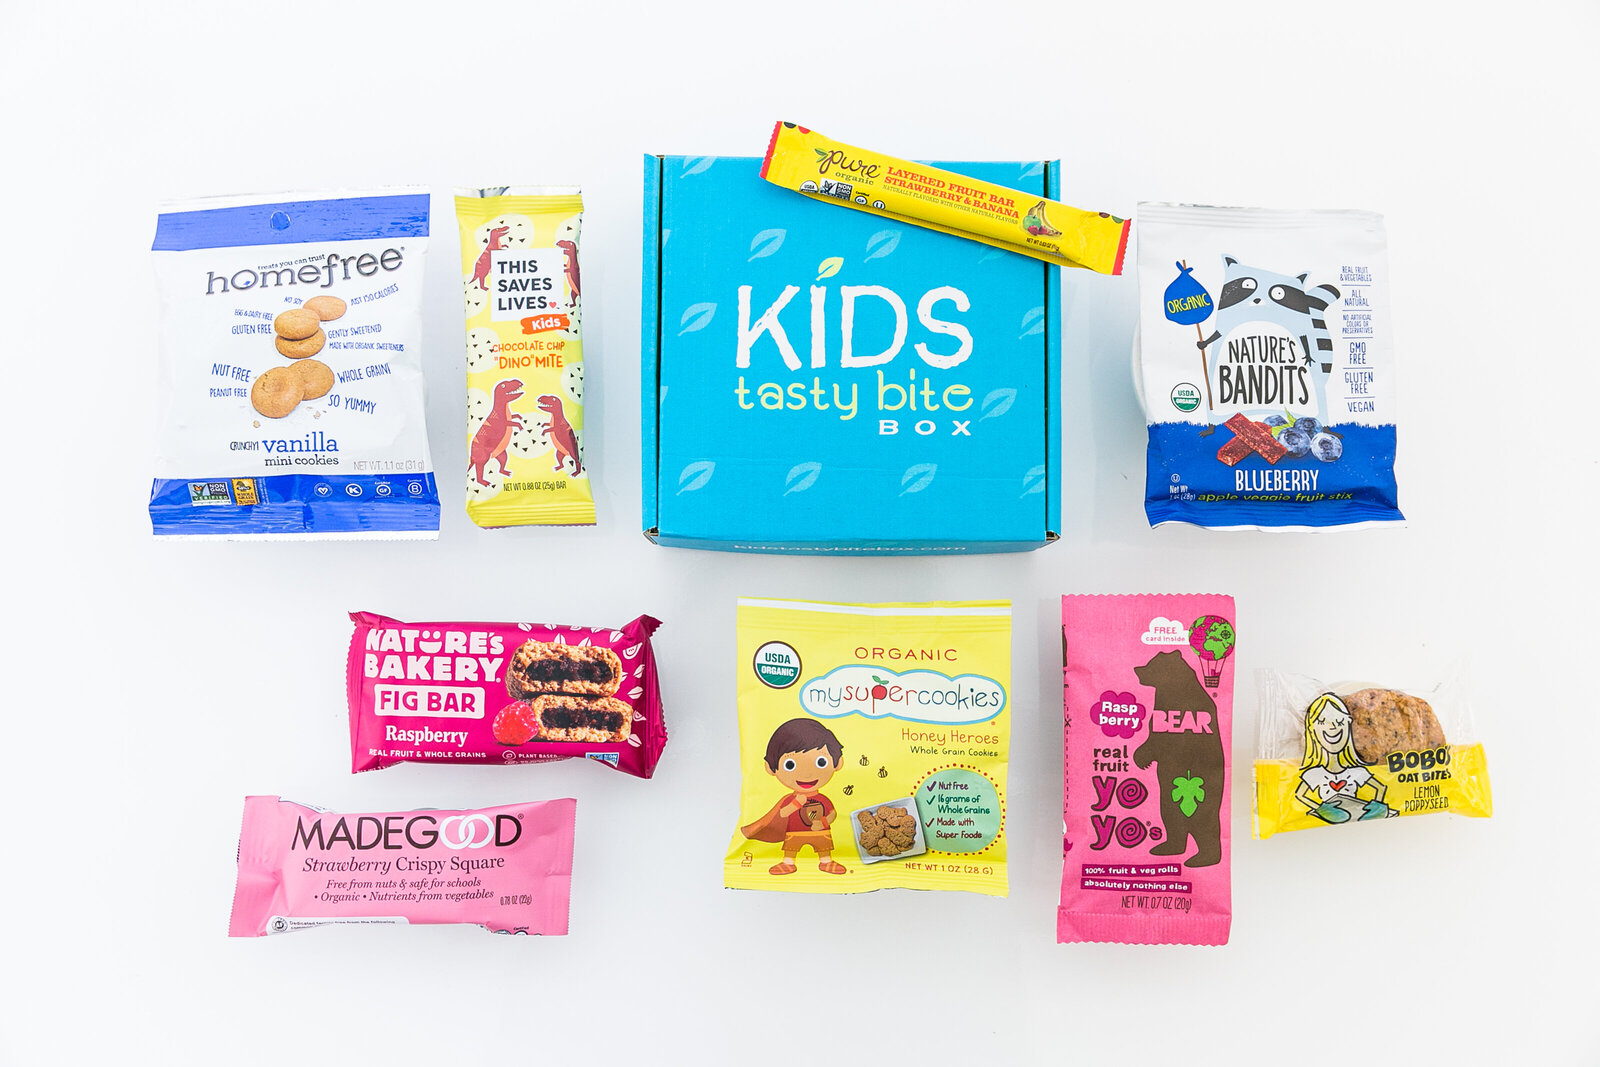 Kids tasty box images-22